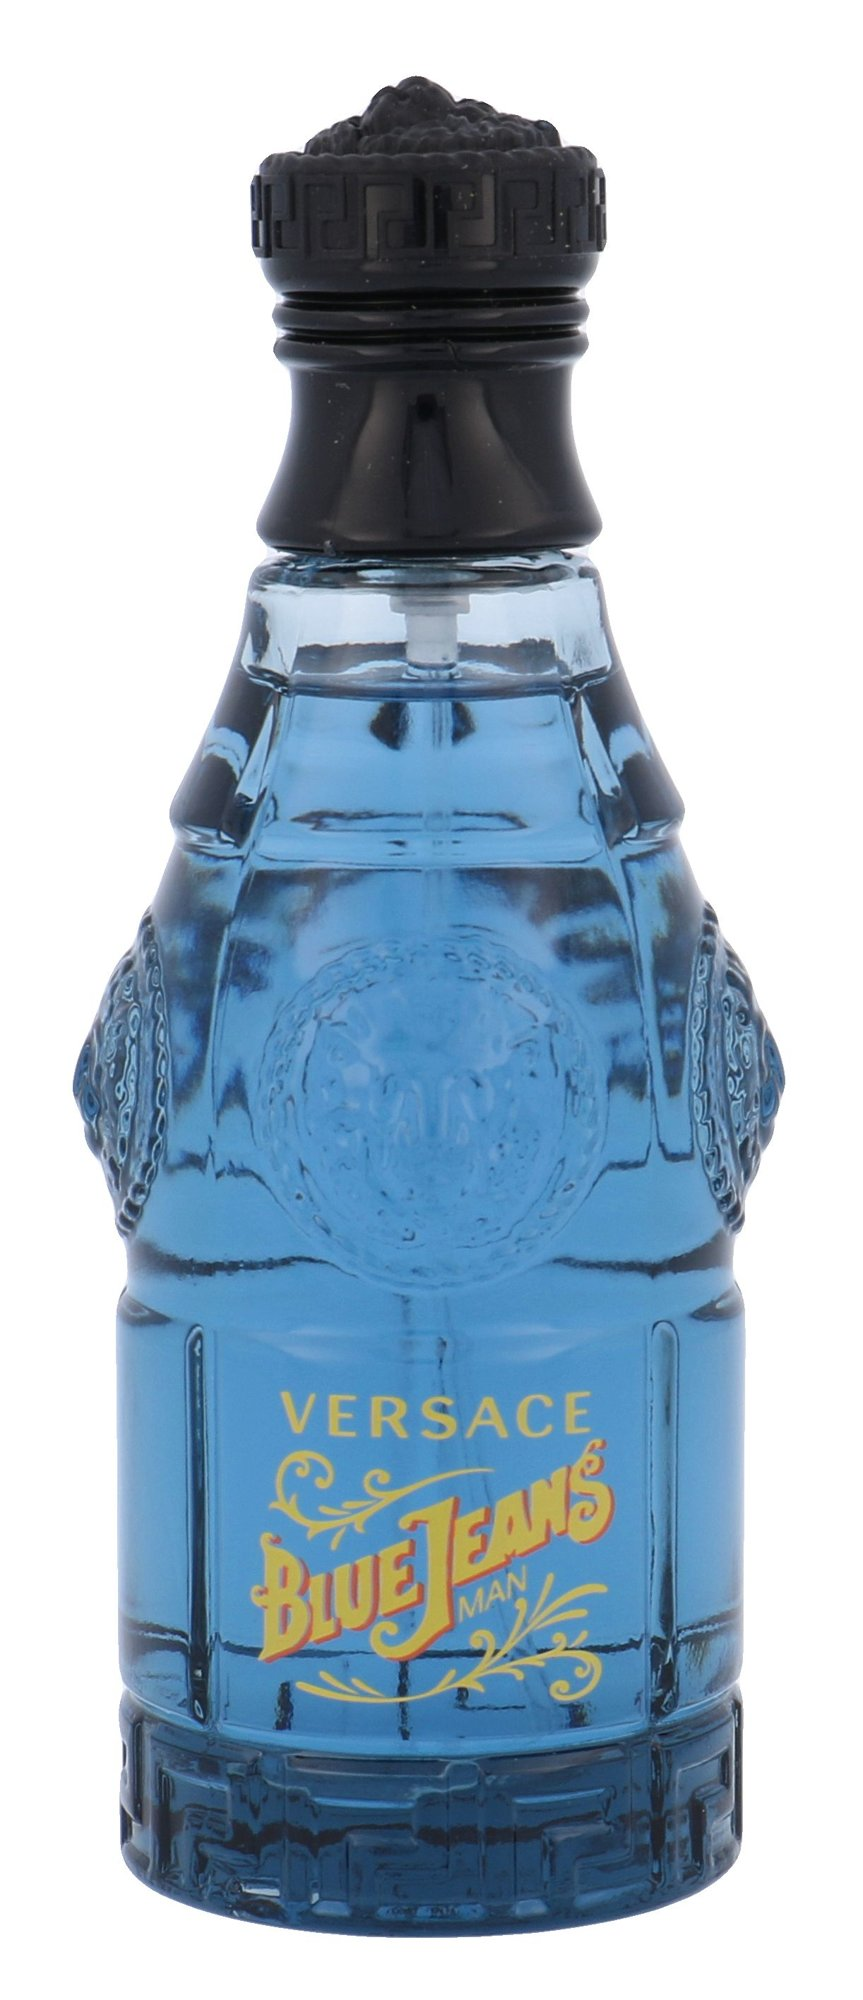 Versace Blue Jeans Man EDT 75ml